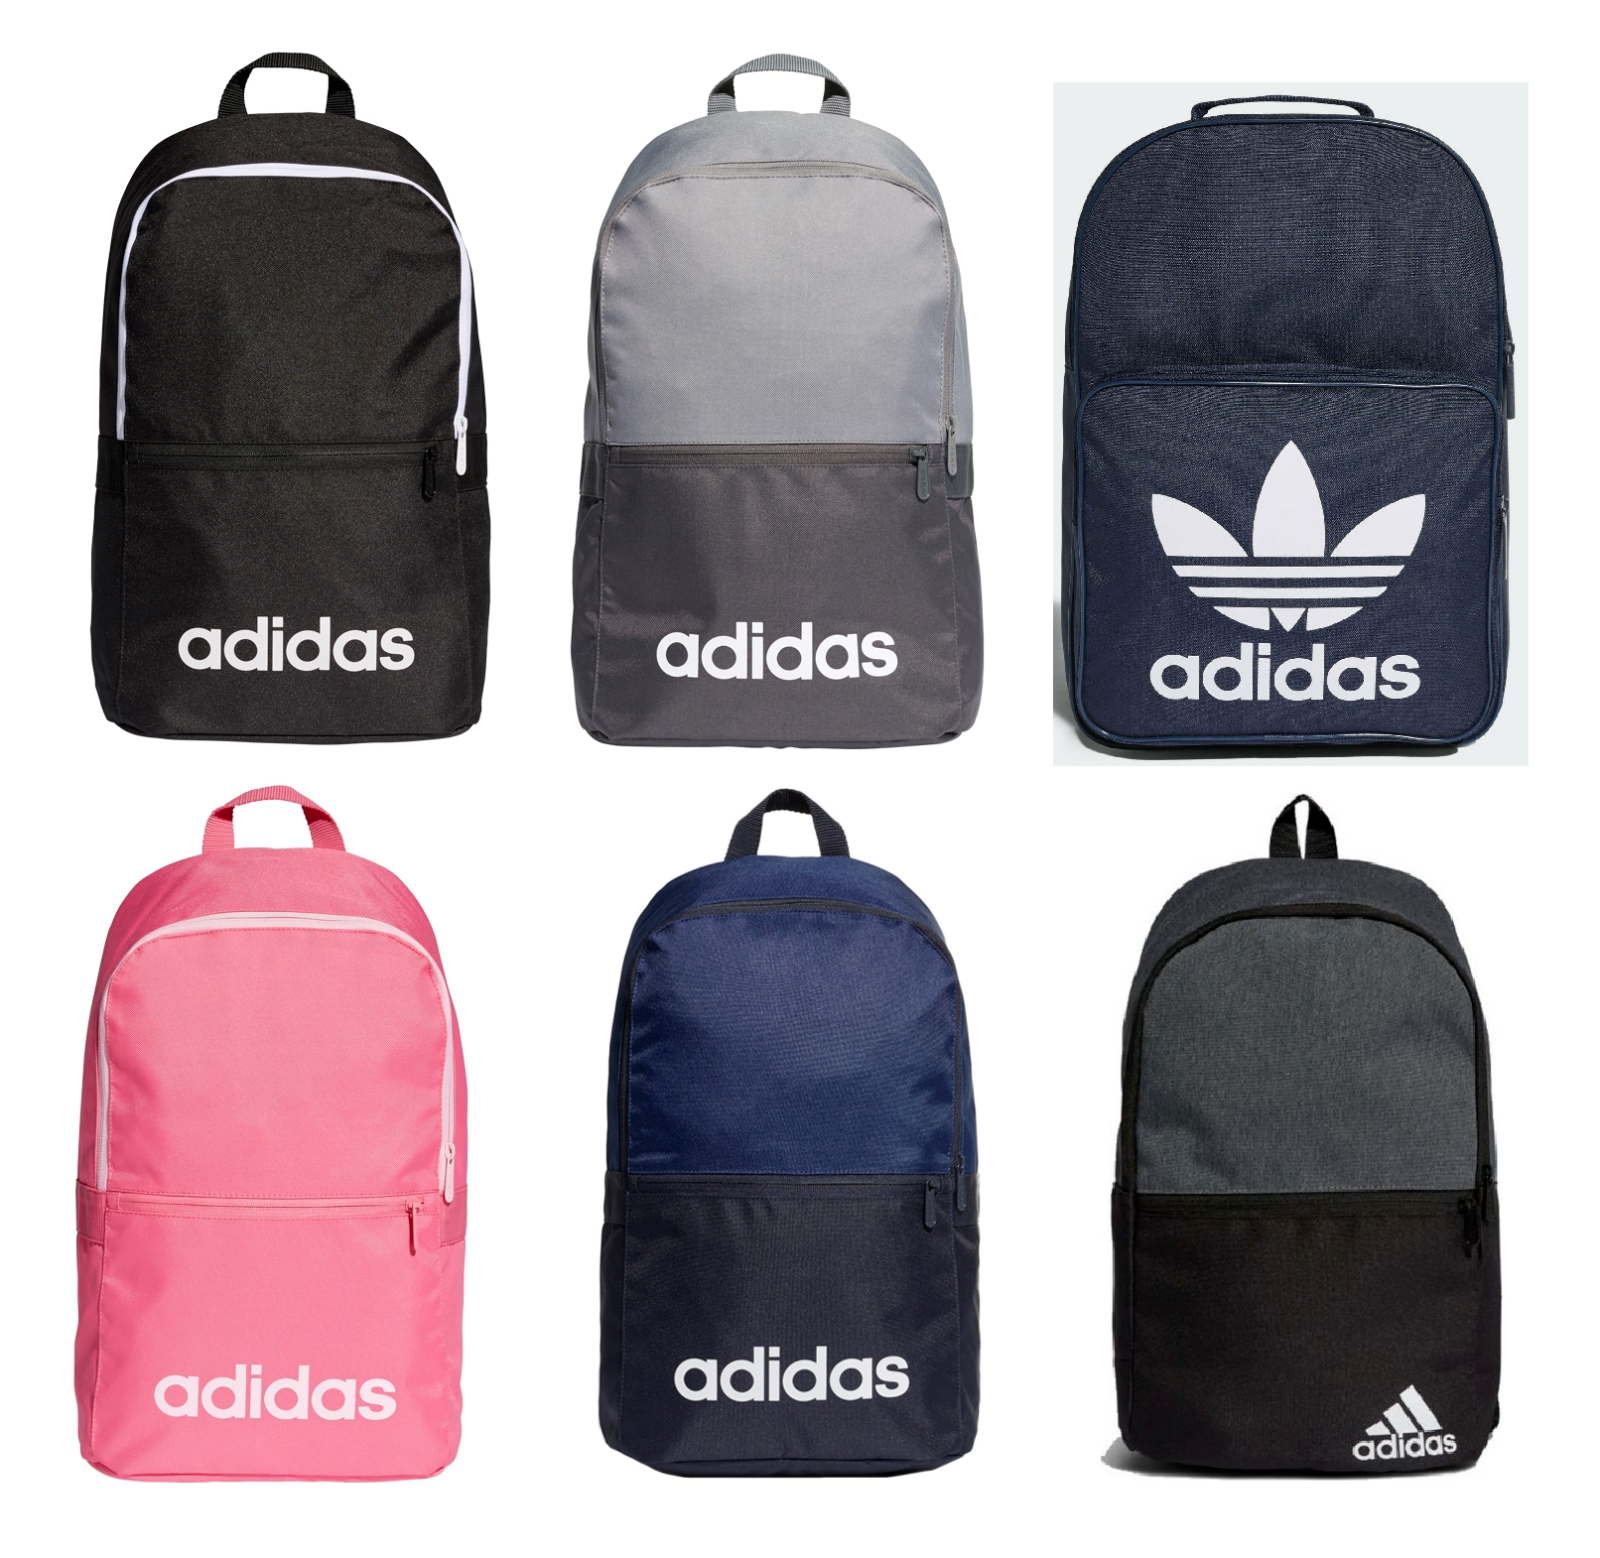 Adidas Linear Performance Backpack Sports School Bag Rucksack Training Travel BP